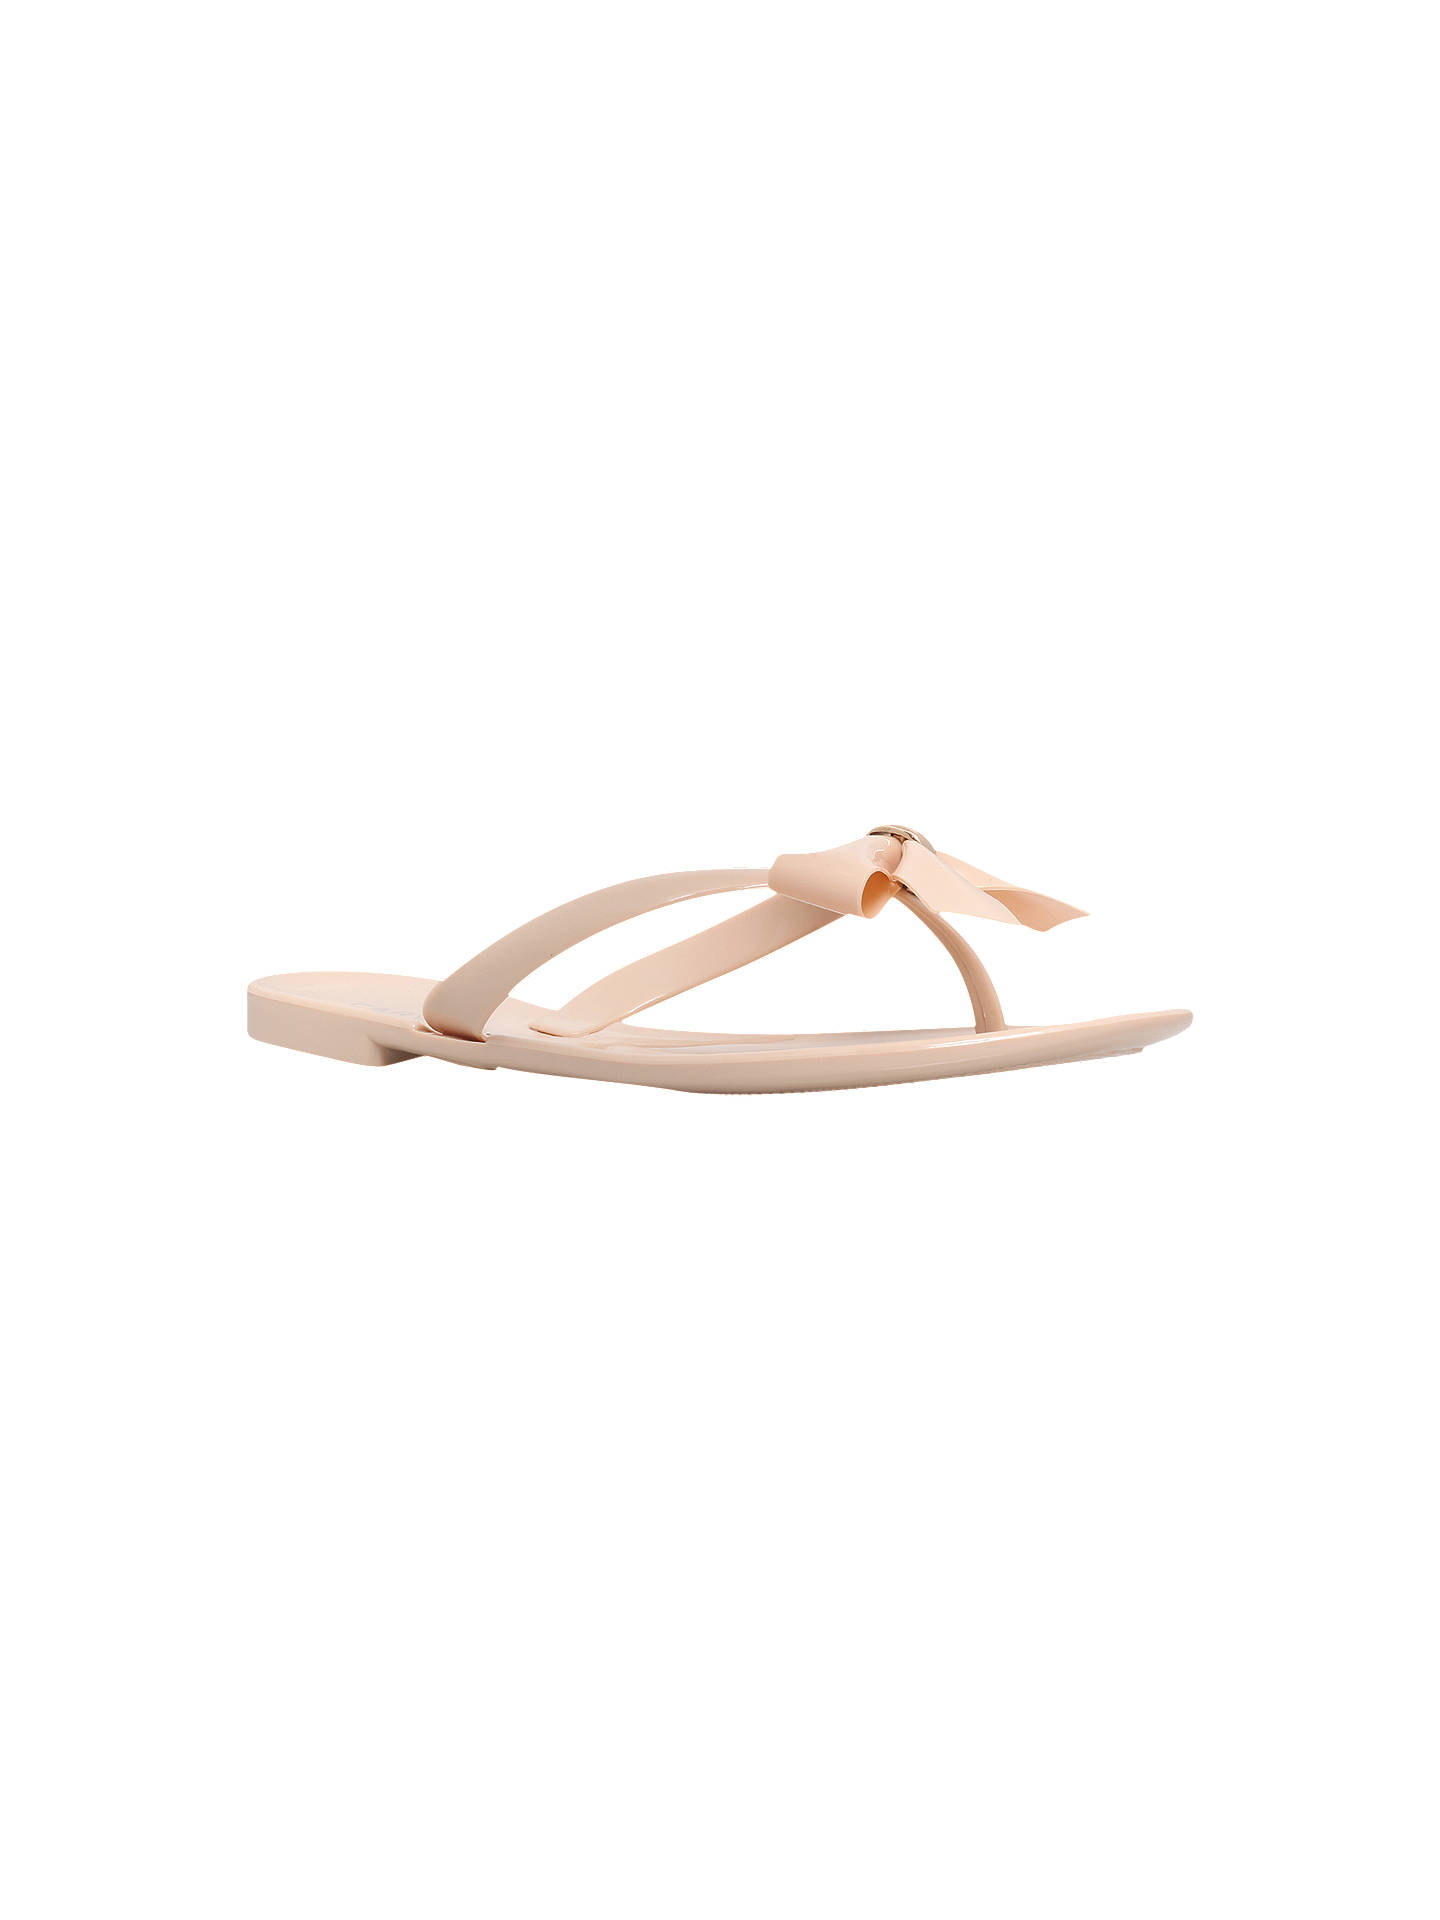 be2e9ccb08d6 Carvela Star Flat T-bar Flip Flops at John Lewis   Partners